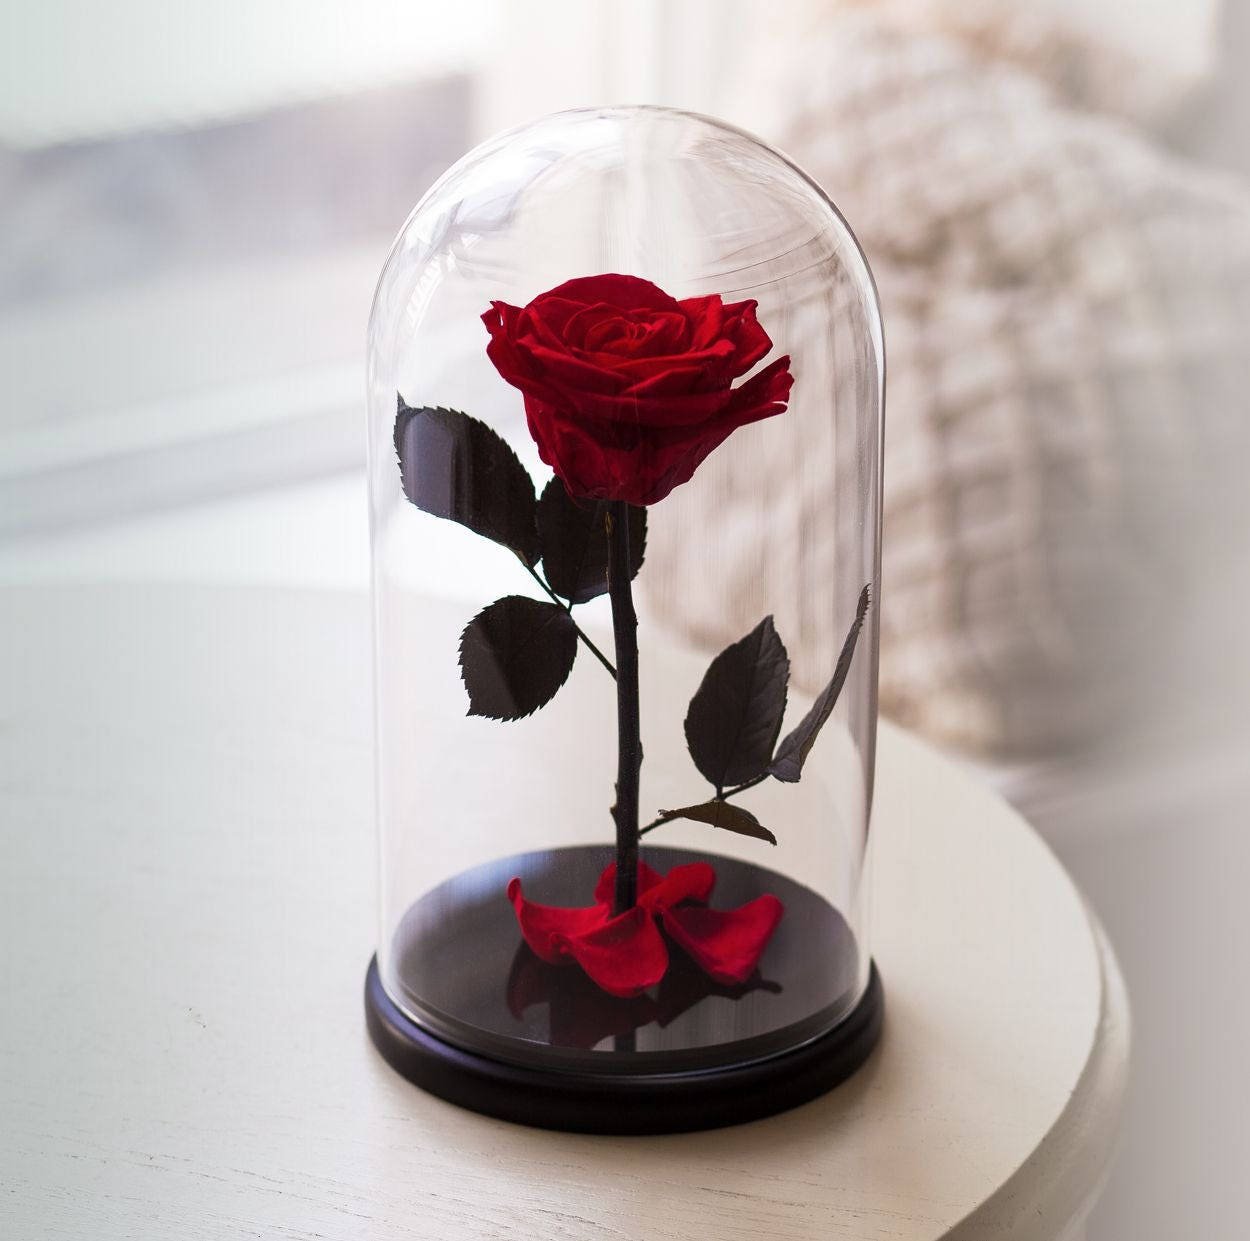 Rose In Glas : beauty and the beast rose live forever rose in glass bella ~ Frokenaadalensverden.com Haus und Dekorationen